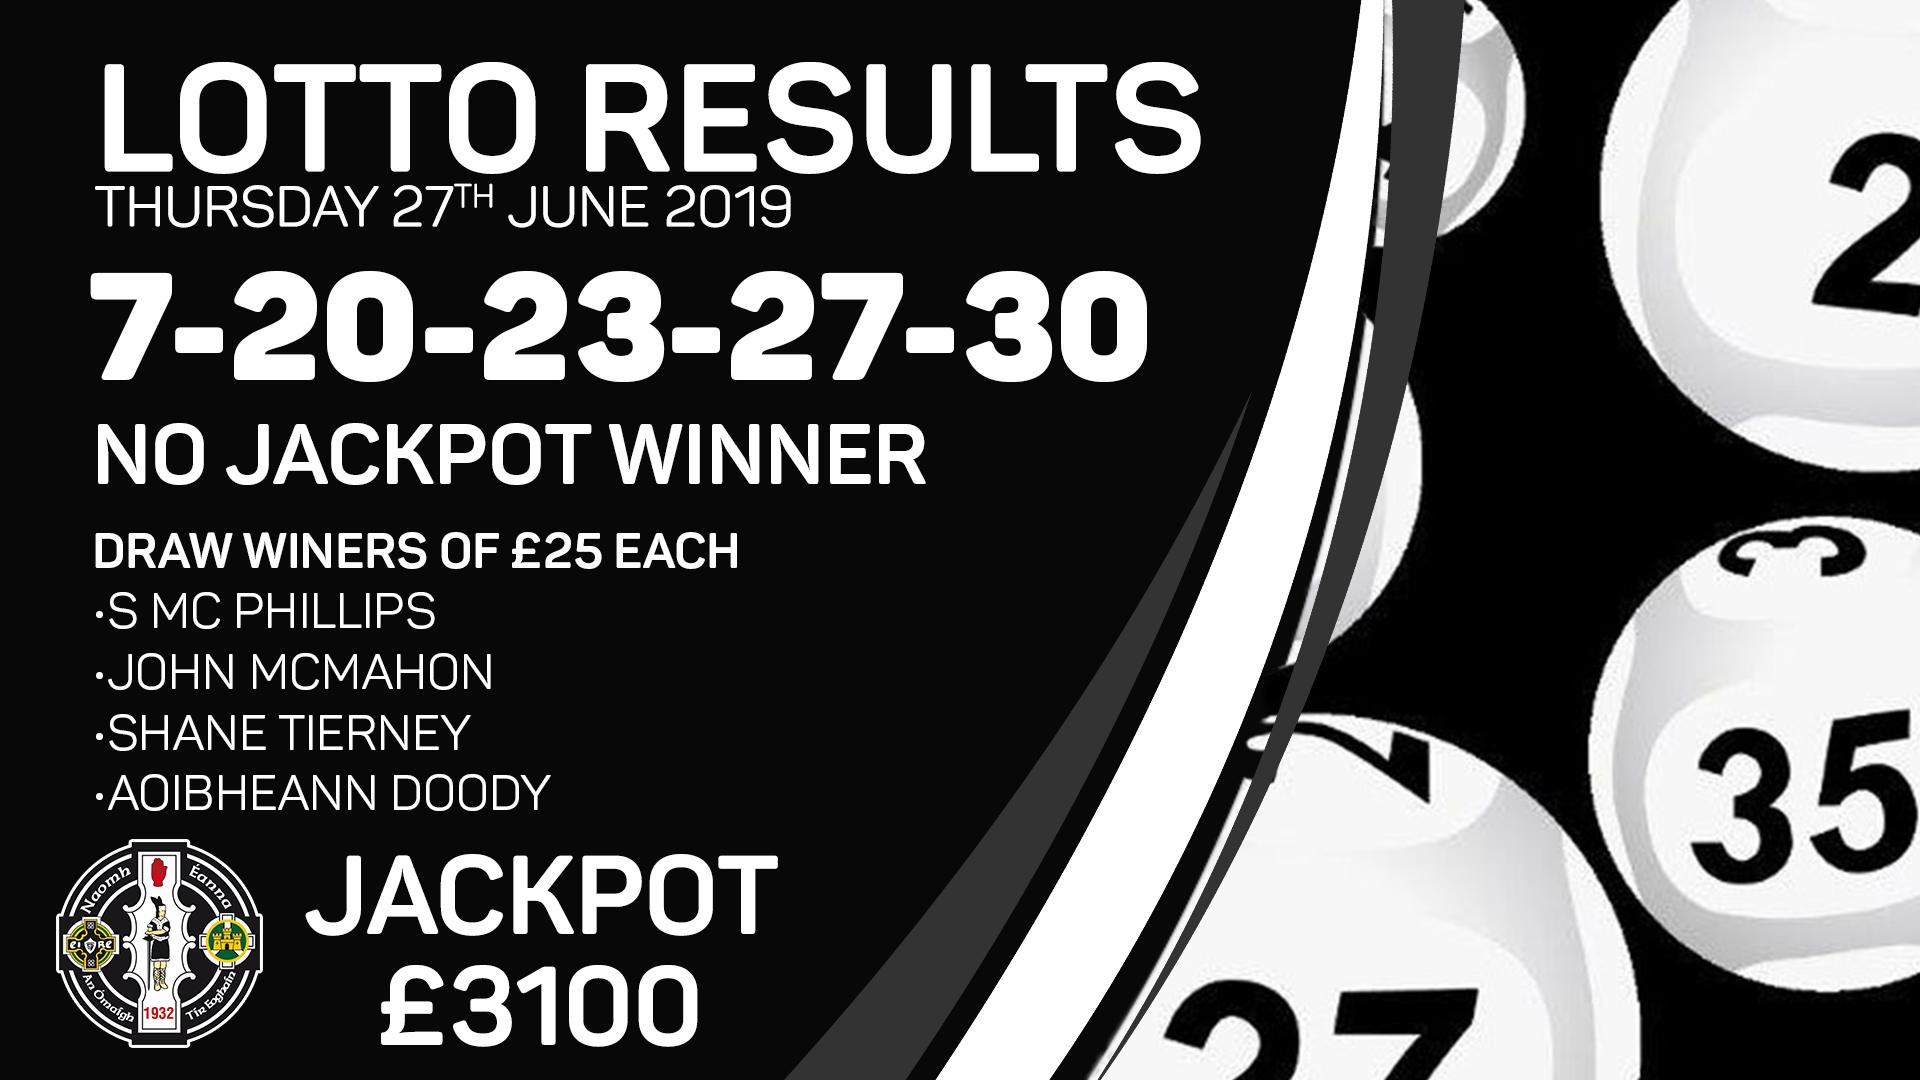 Lotto Results – Thursday 27th June 2019